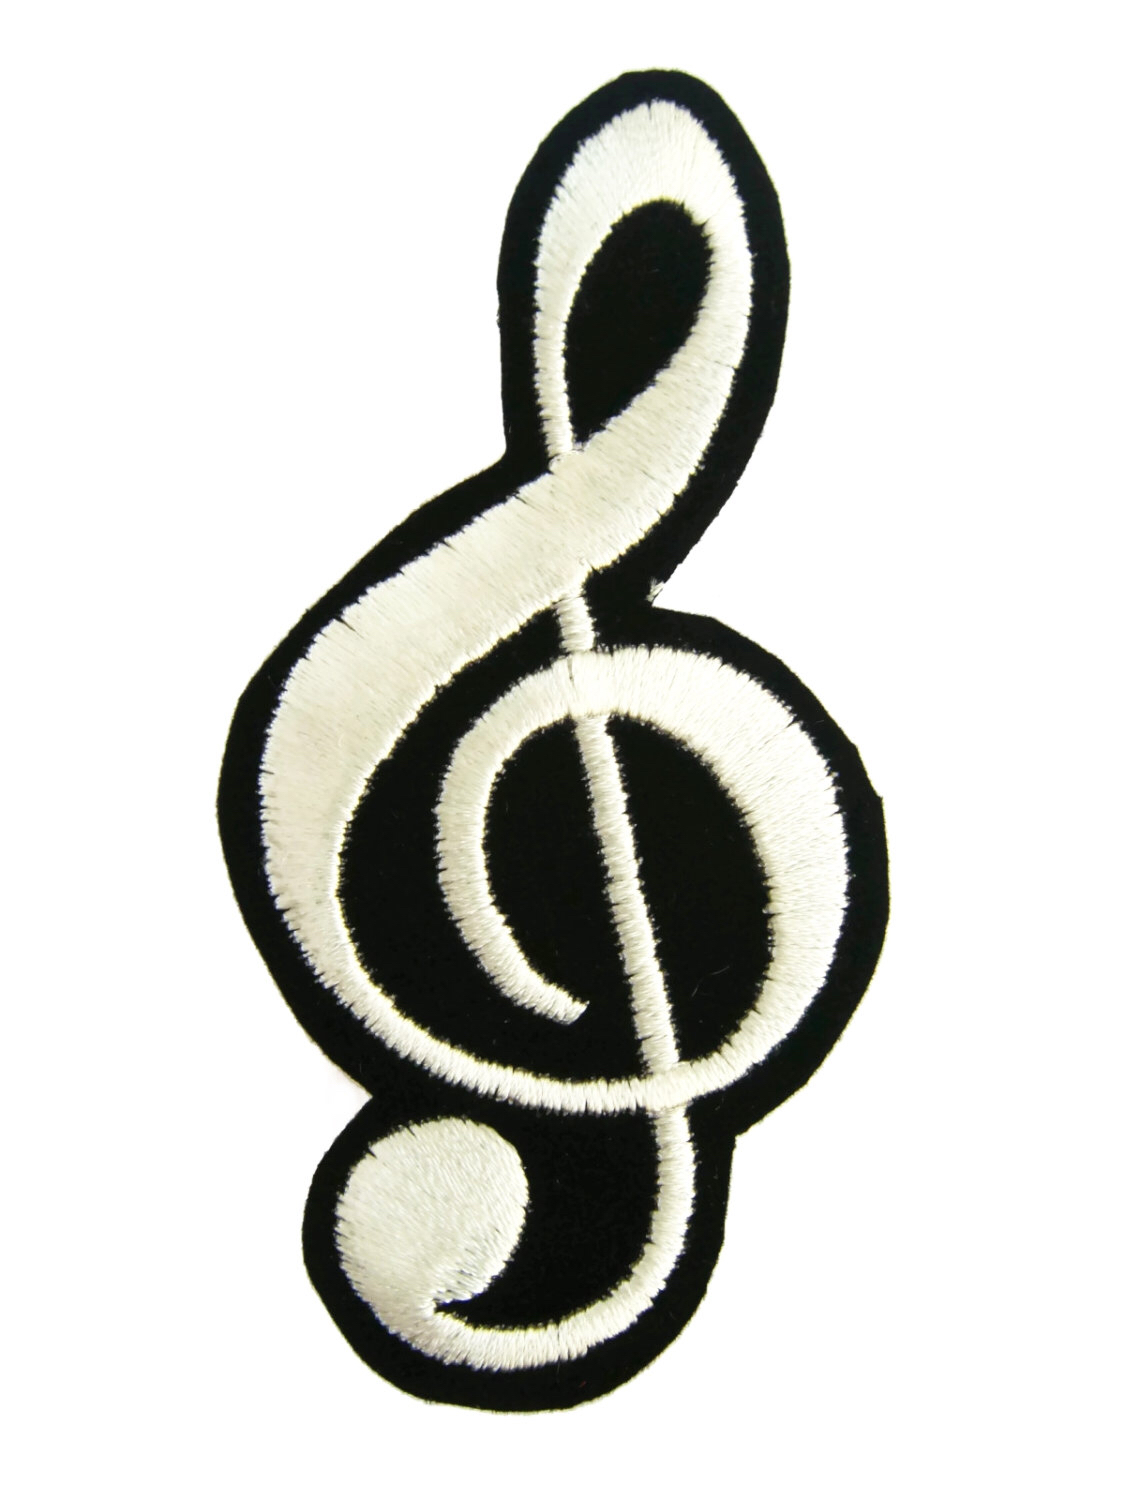 1125x1500 G Clef Music Note Symbol Embroidered Applique Iron On Patch By